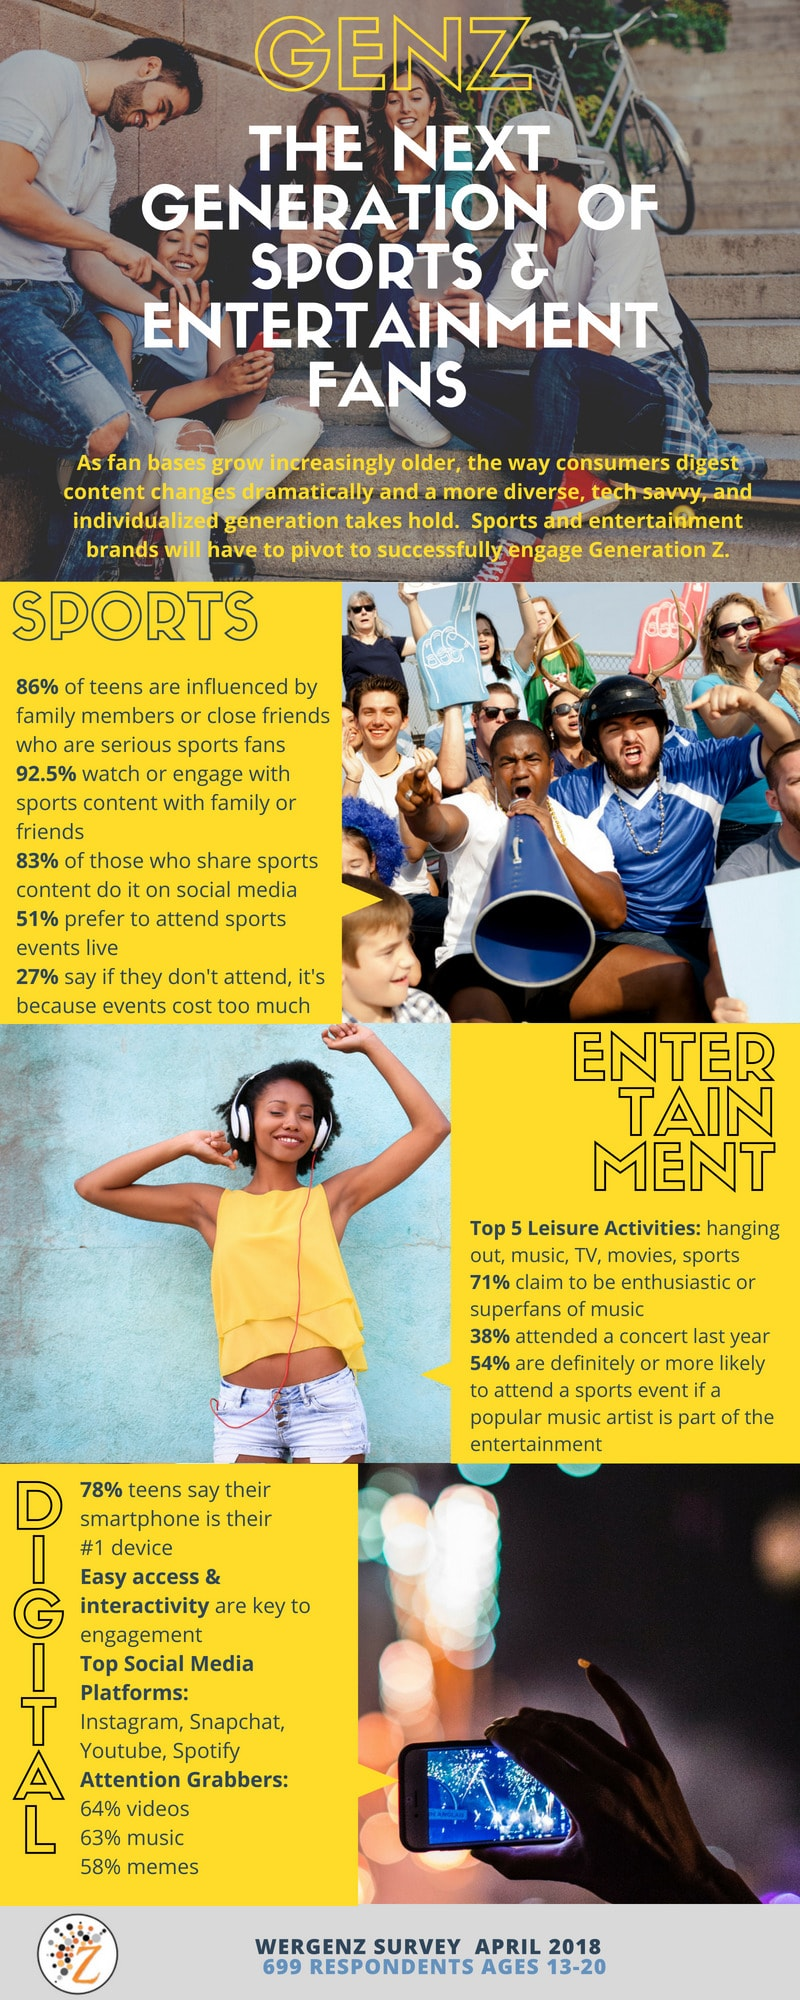 Genz The Next Generation Of Sports Entertainment Fans Infographic